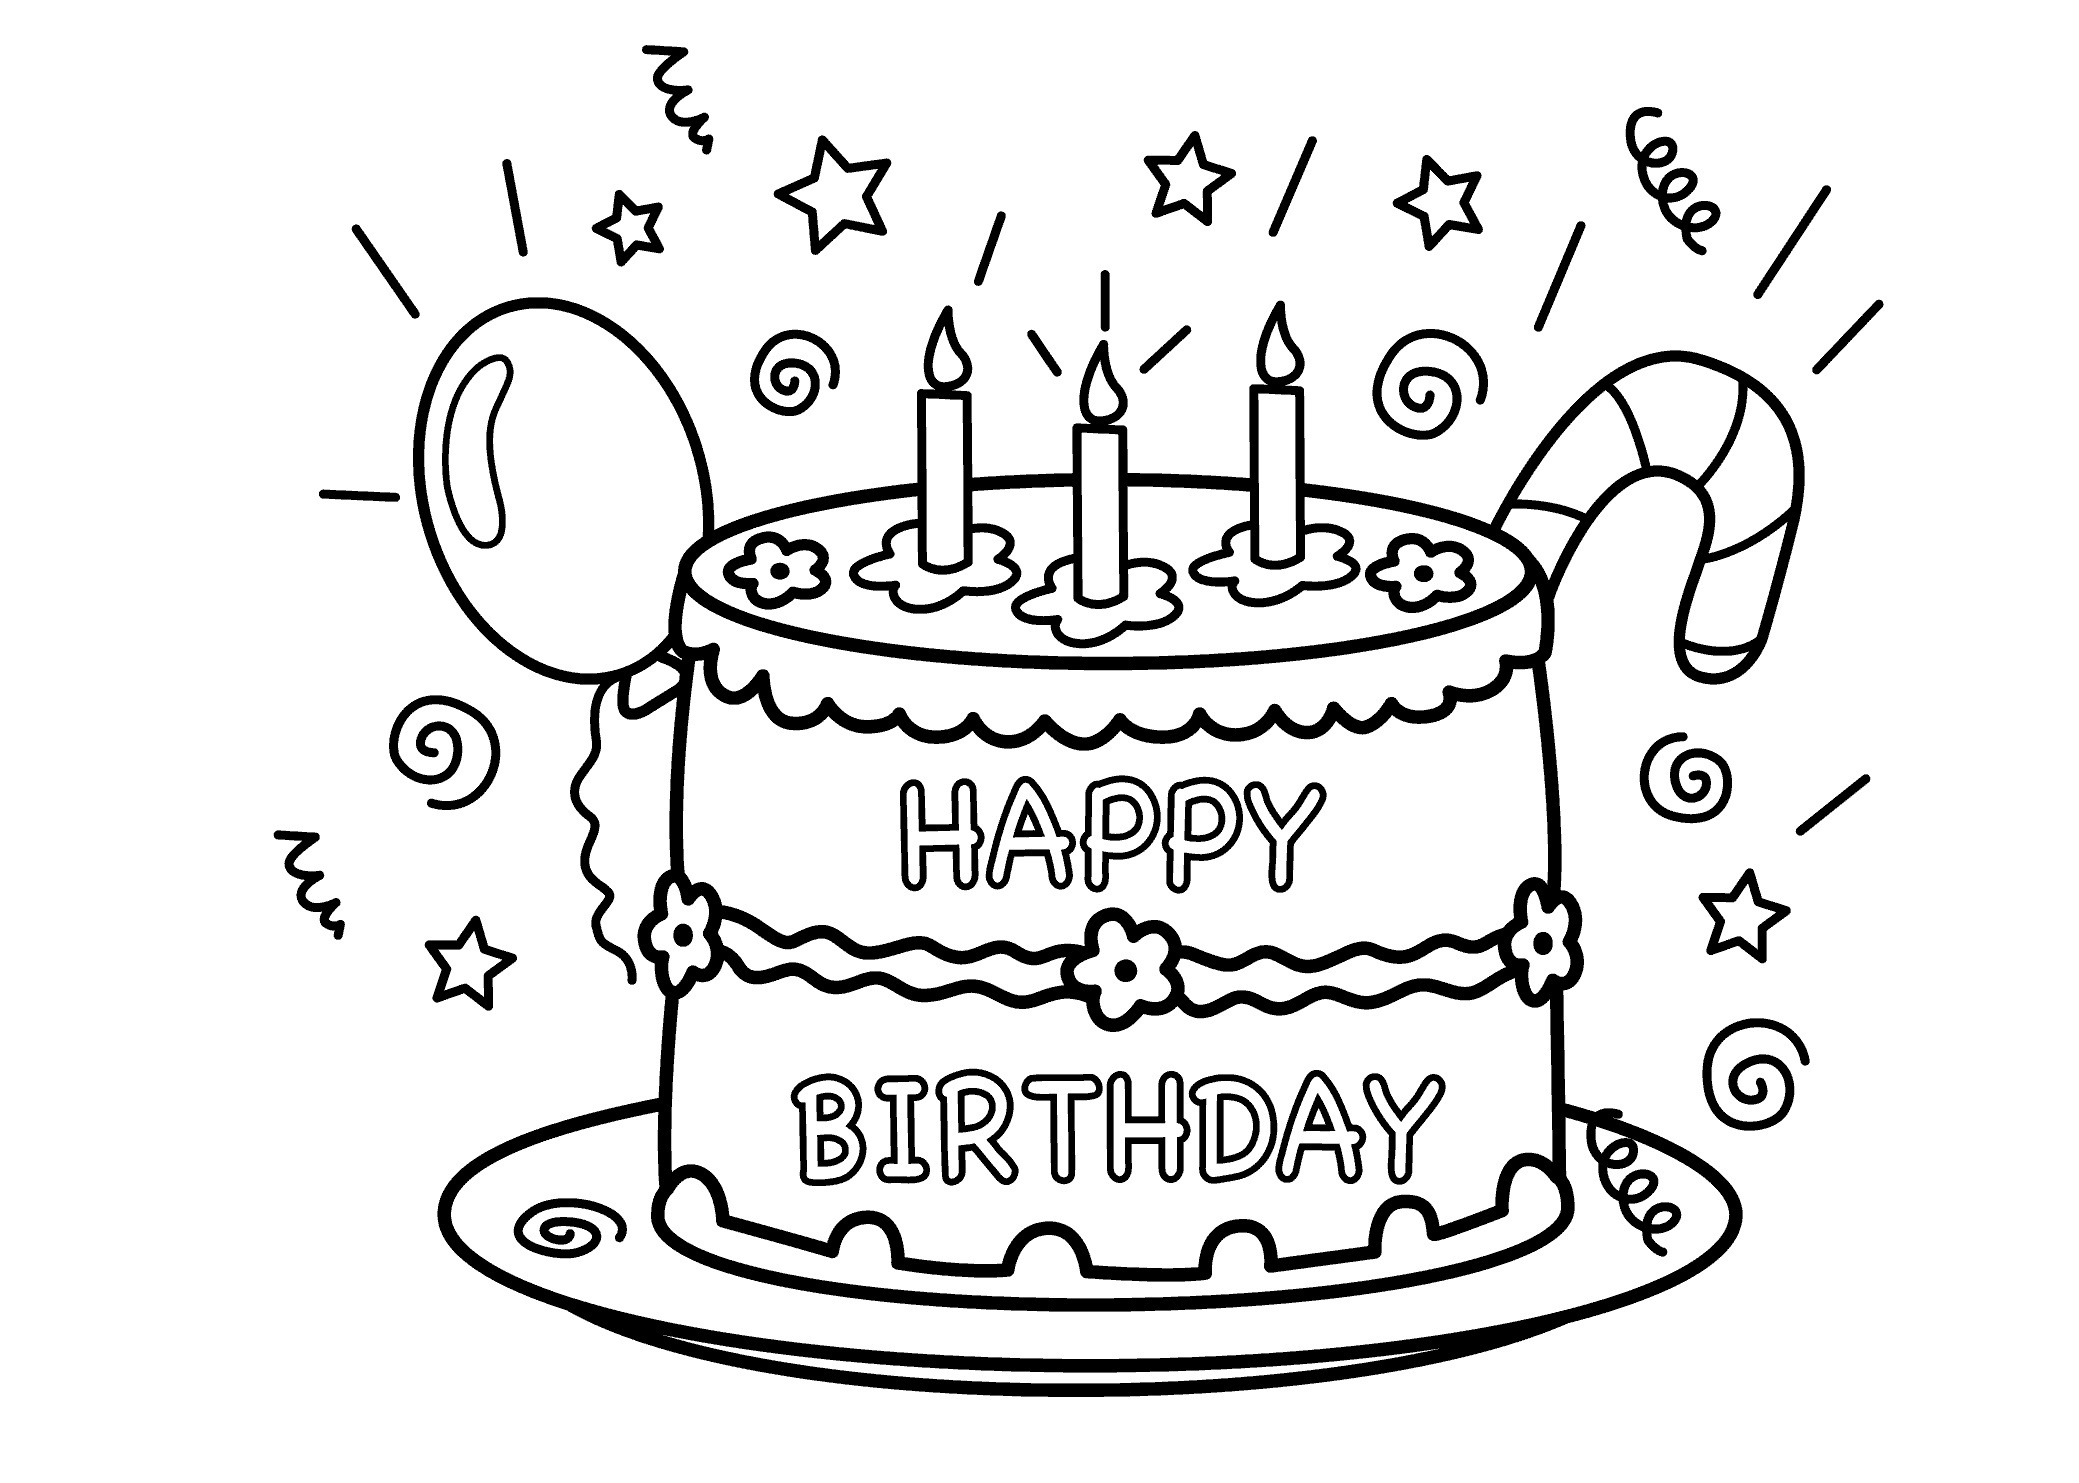 birthday cake color page - Lollipop Coloring Pages Printable